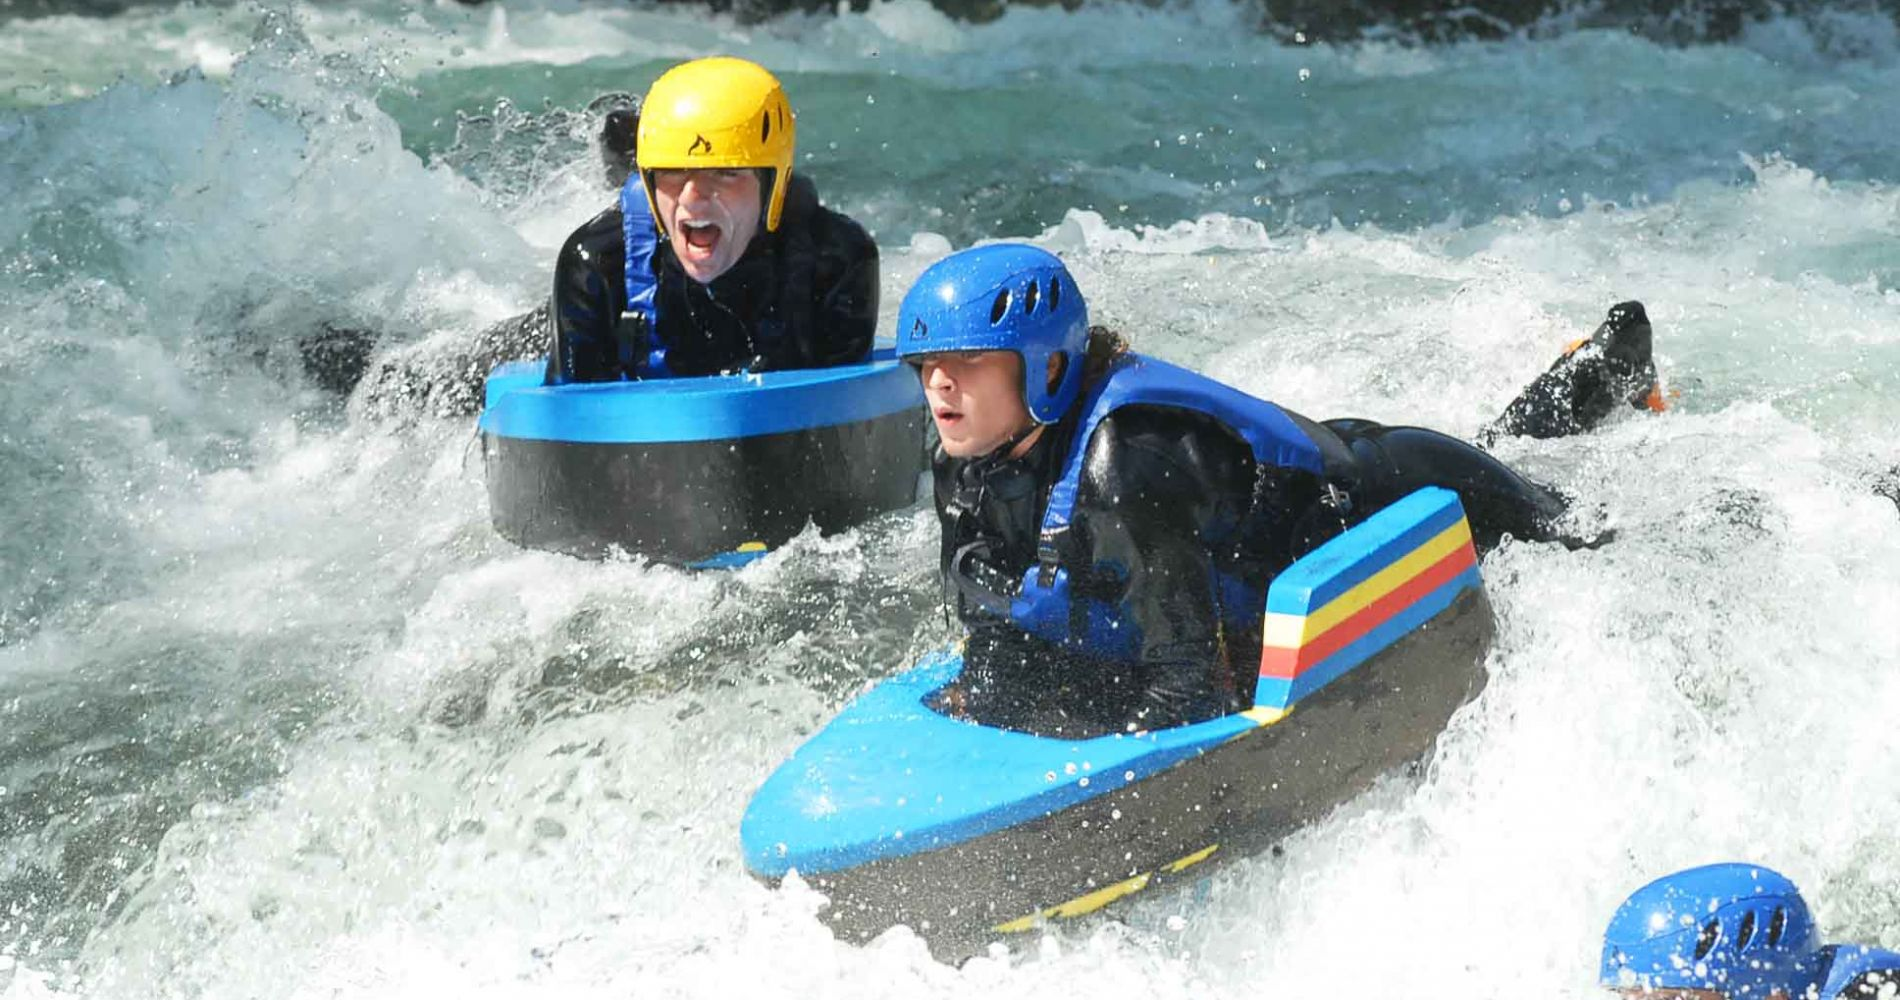 Fantastic Hydrospeed Experience for Two in Spain